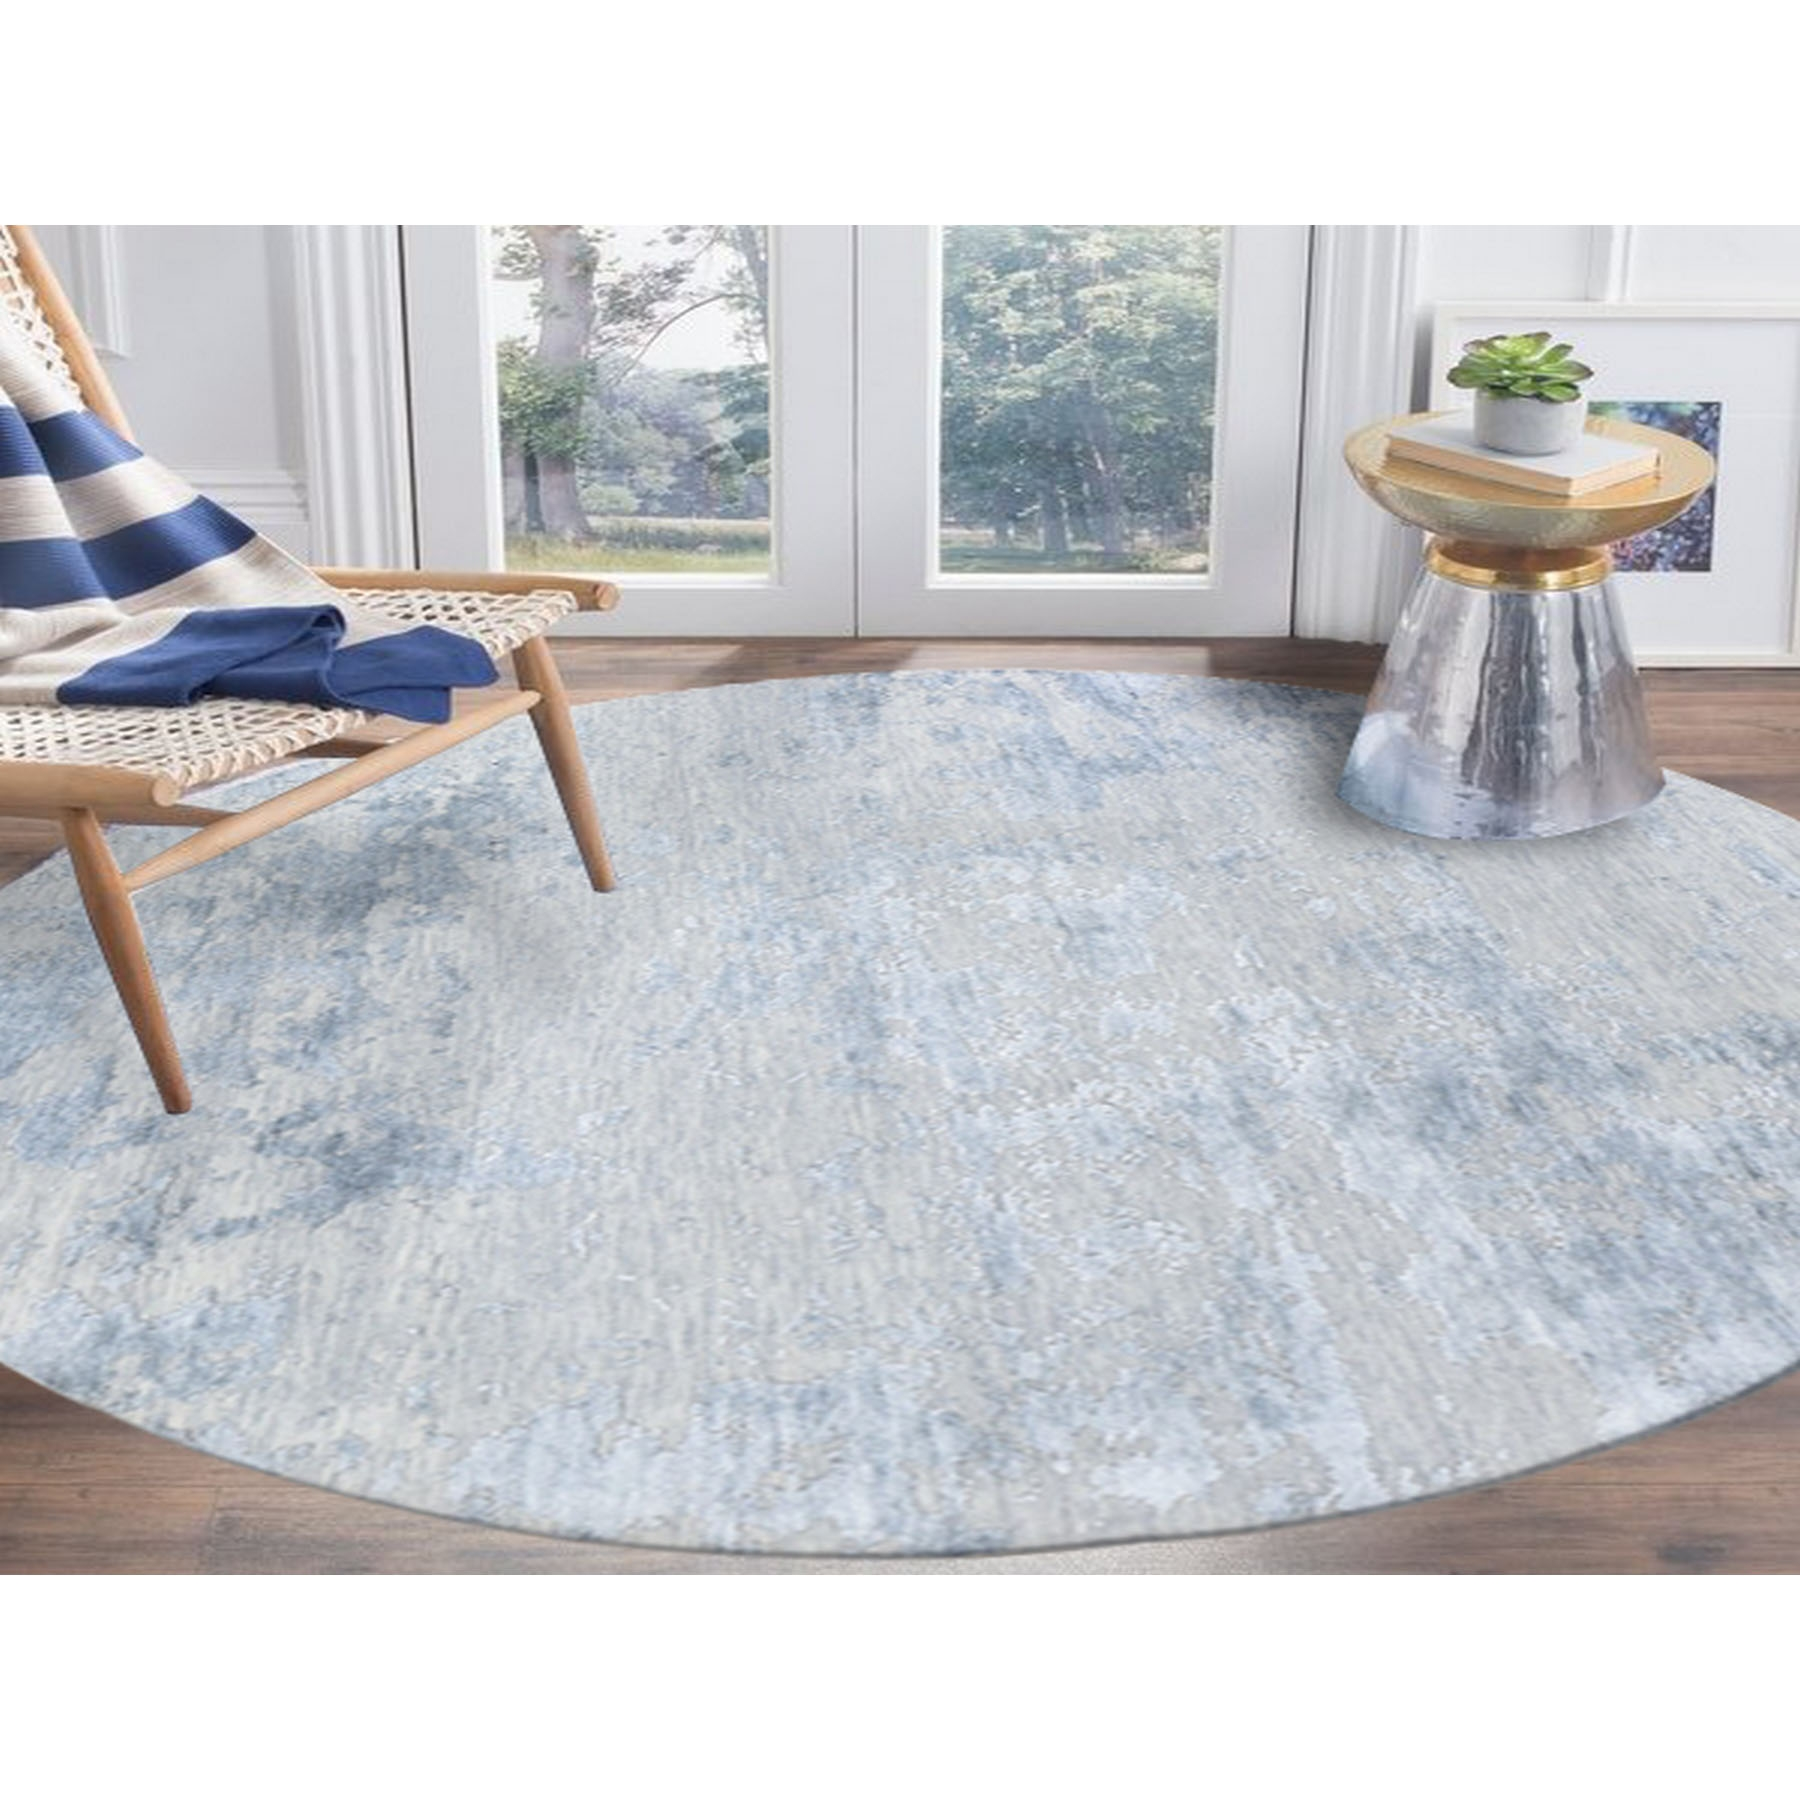 """7'10""""x7'10"""" Round Abstract Design Wool And Silk Hi-Low Pile Denser Weave Hand Knotted Oriental Rug"""